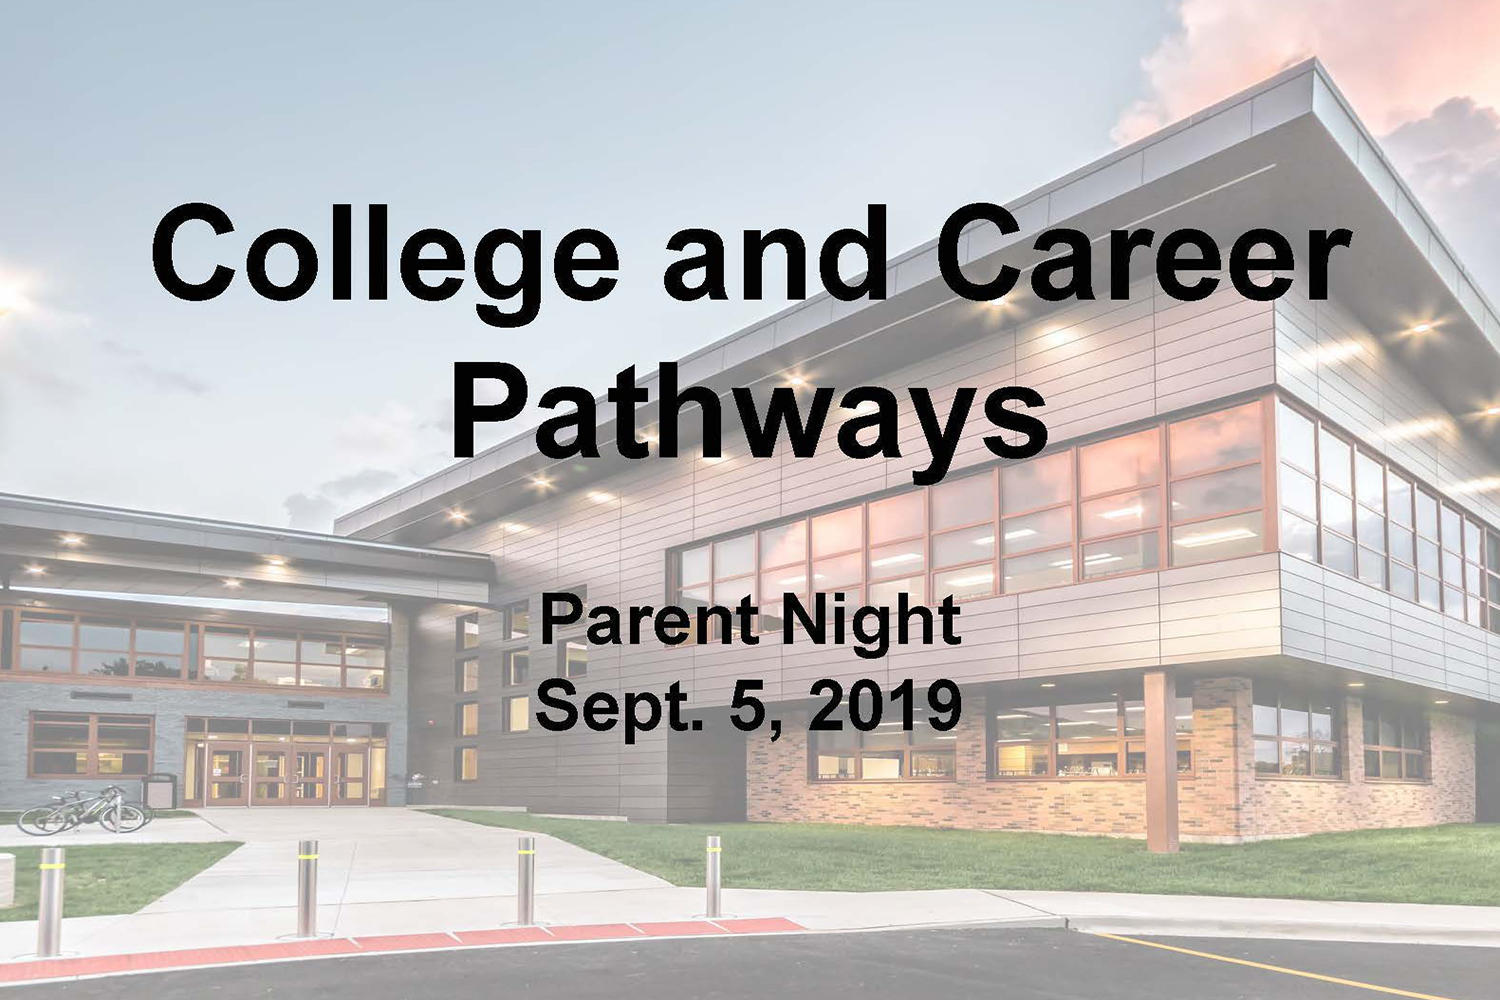 College & Career Pathways presentation slideshow